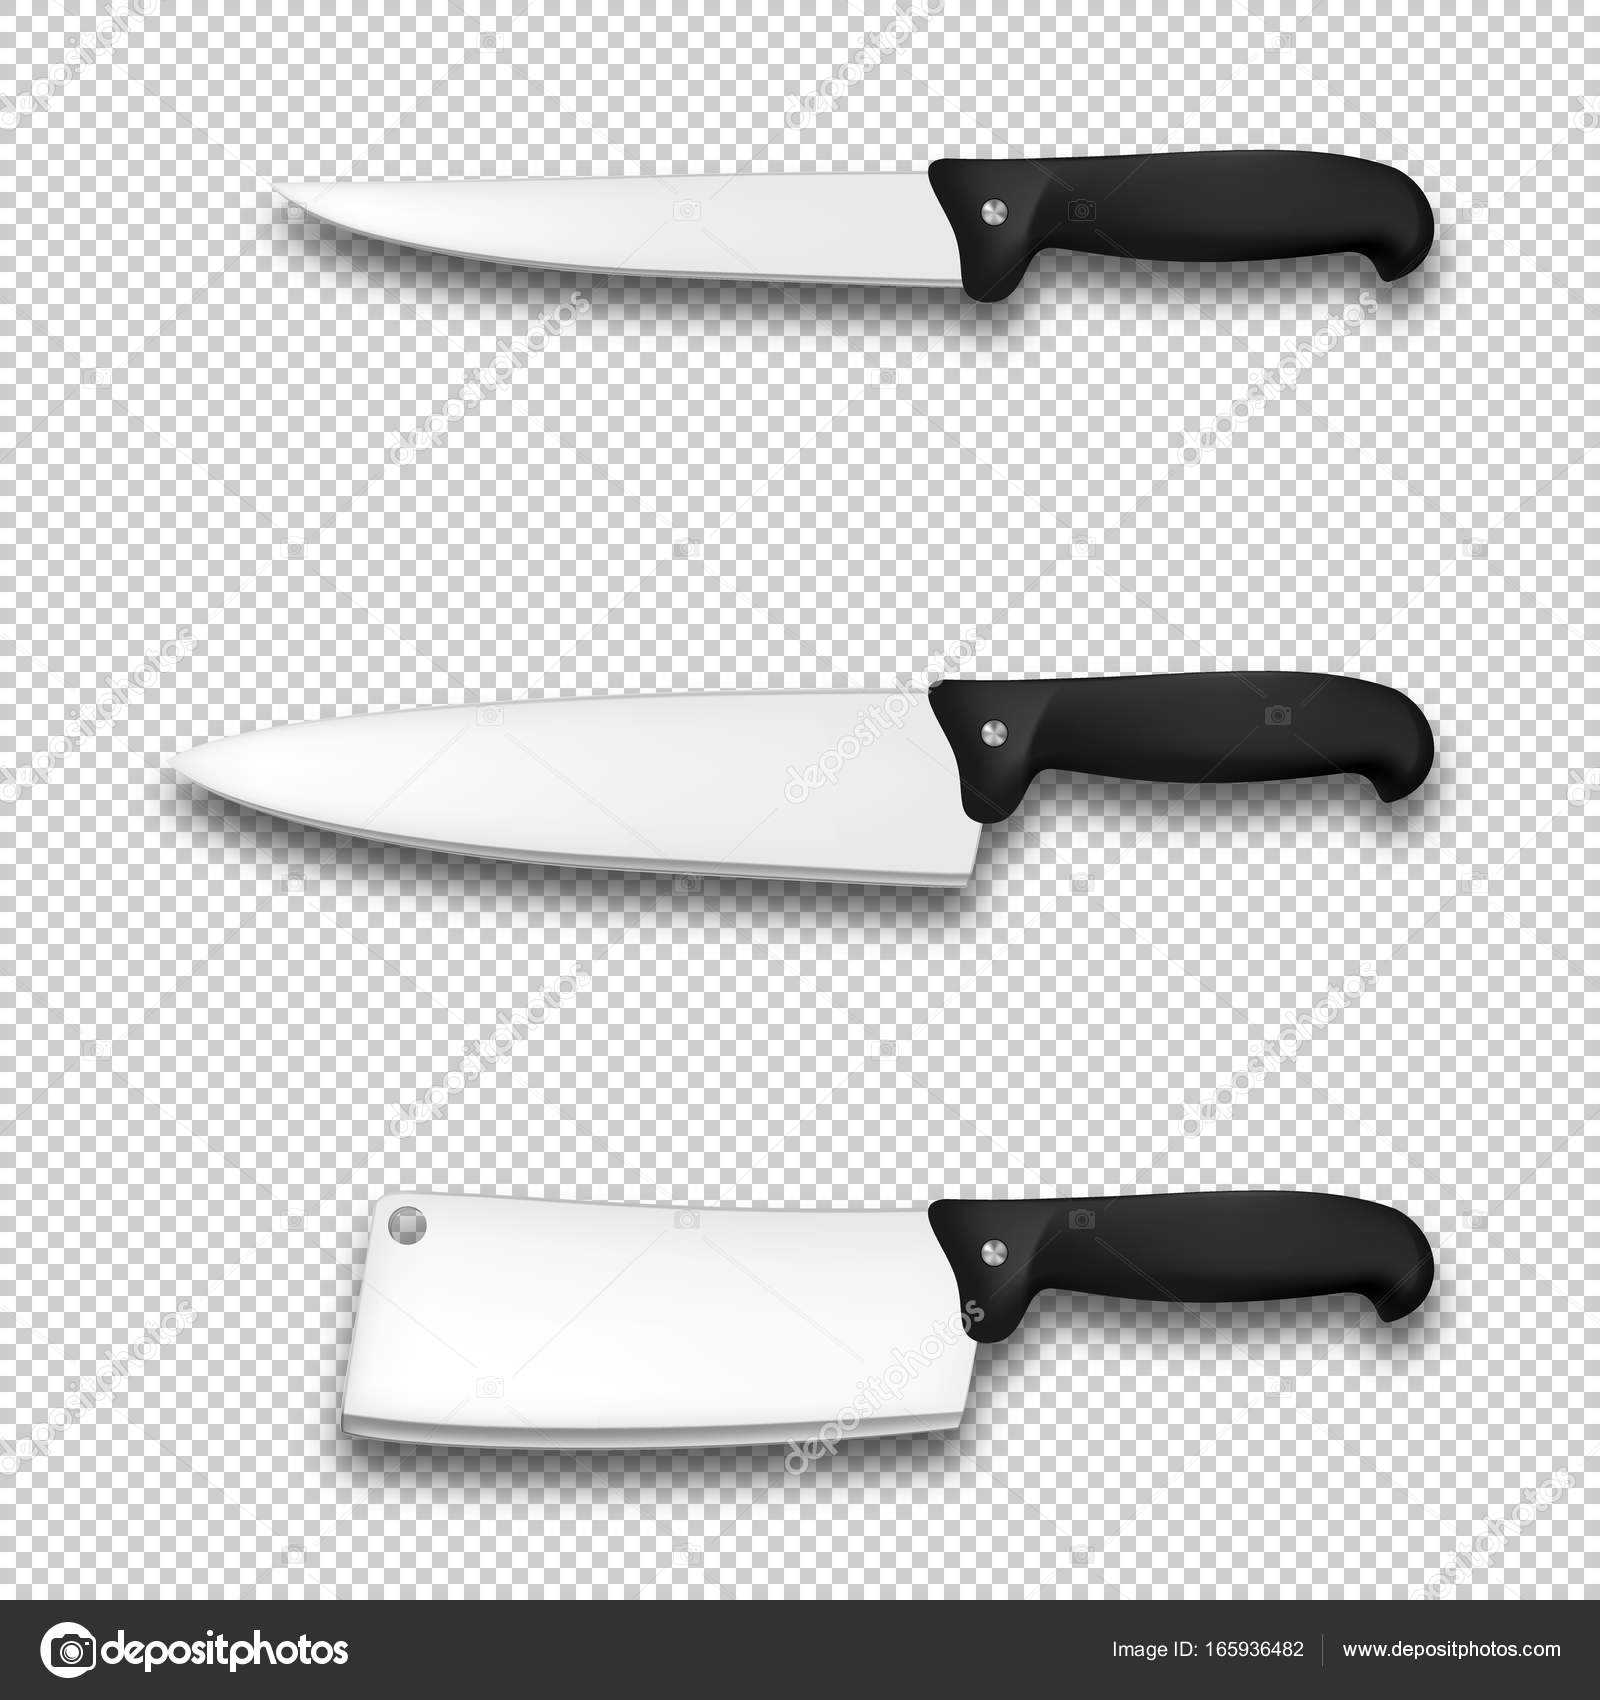 cutlery icon set vector realistic diffrent kitchen knives closeup